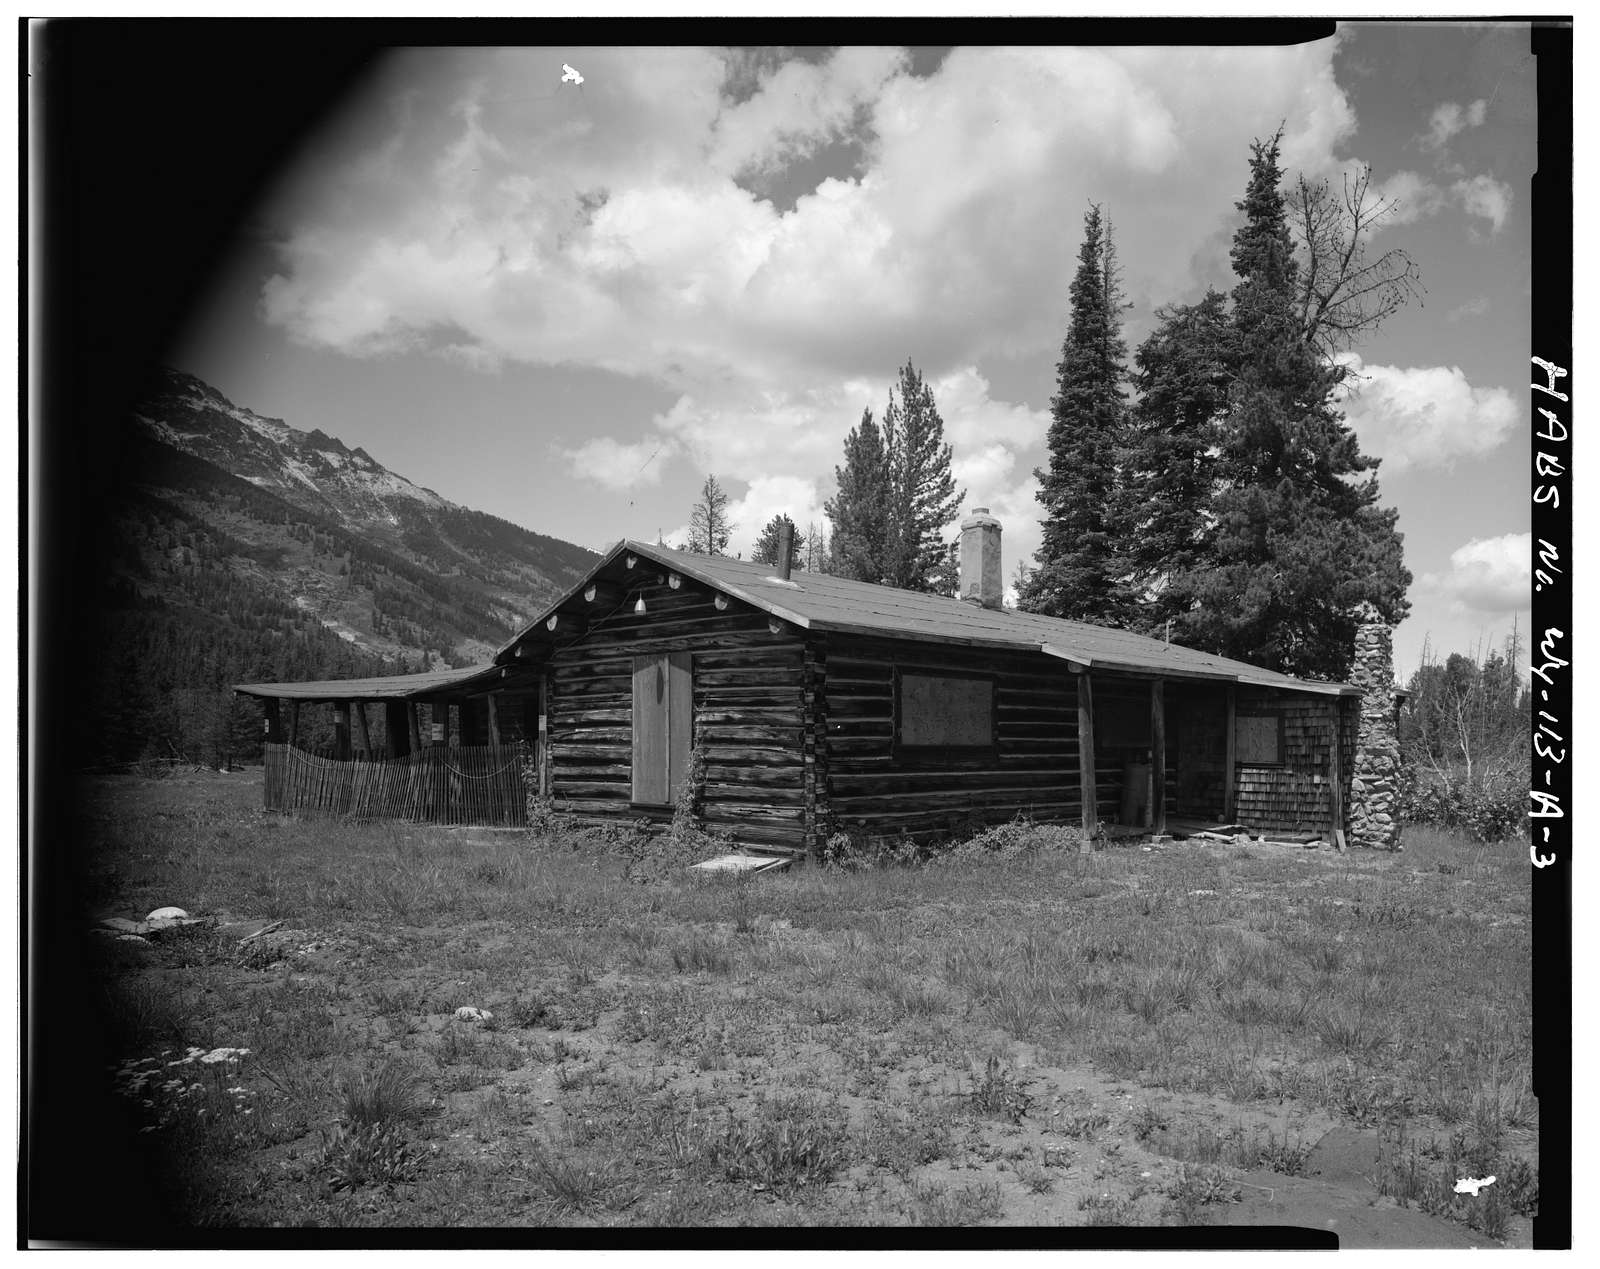 Geraldine Lucas Homestead, Geraldine Lucas Cabin, West bank Cottonwood Creek, 2.5 miles downstream from Jenny Lake, Moose, Teton County, WY